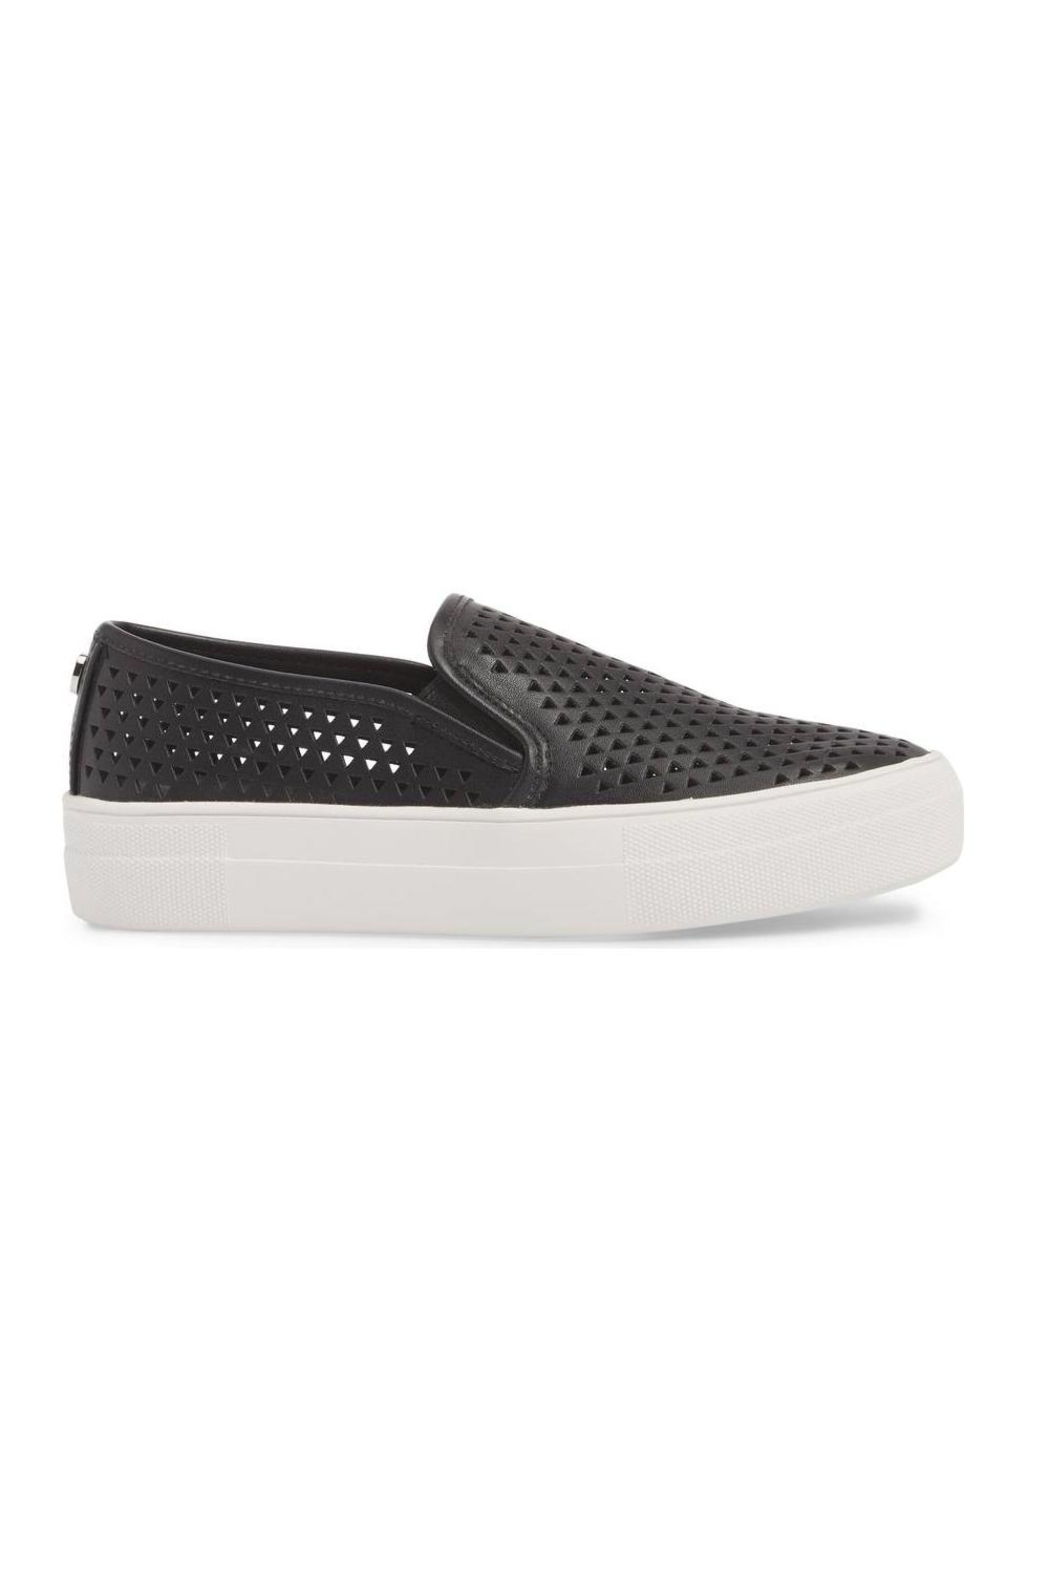 Steve Madden Gal-P Perforated Slip-On - Side Cropped Image